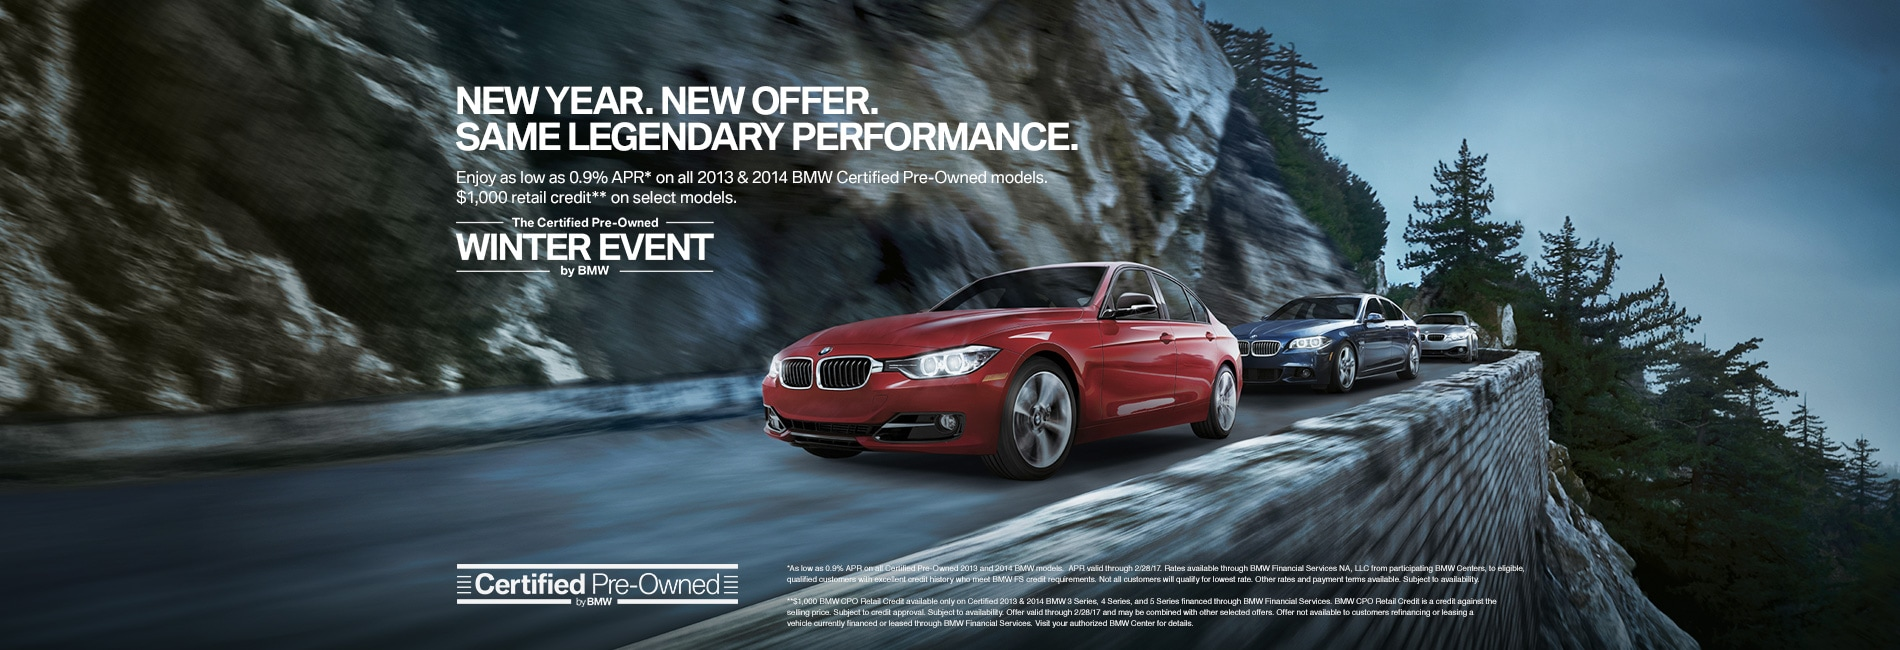 Certified Pre Owned Bmw Specials In Charlotte Hendrick